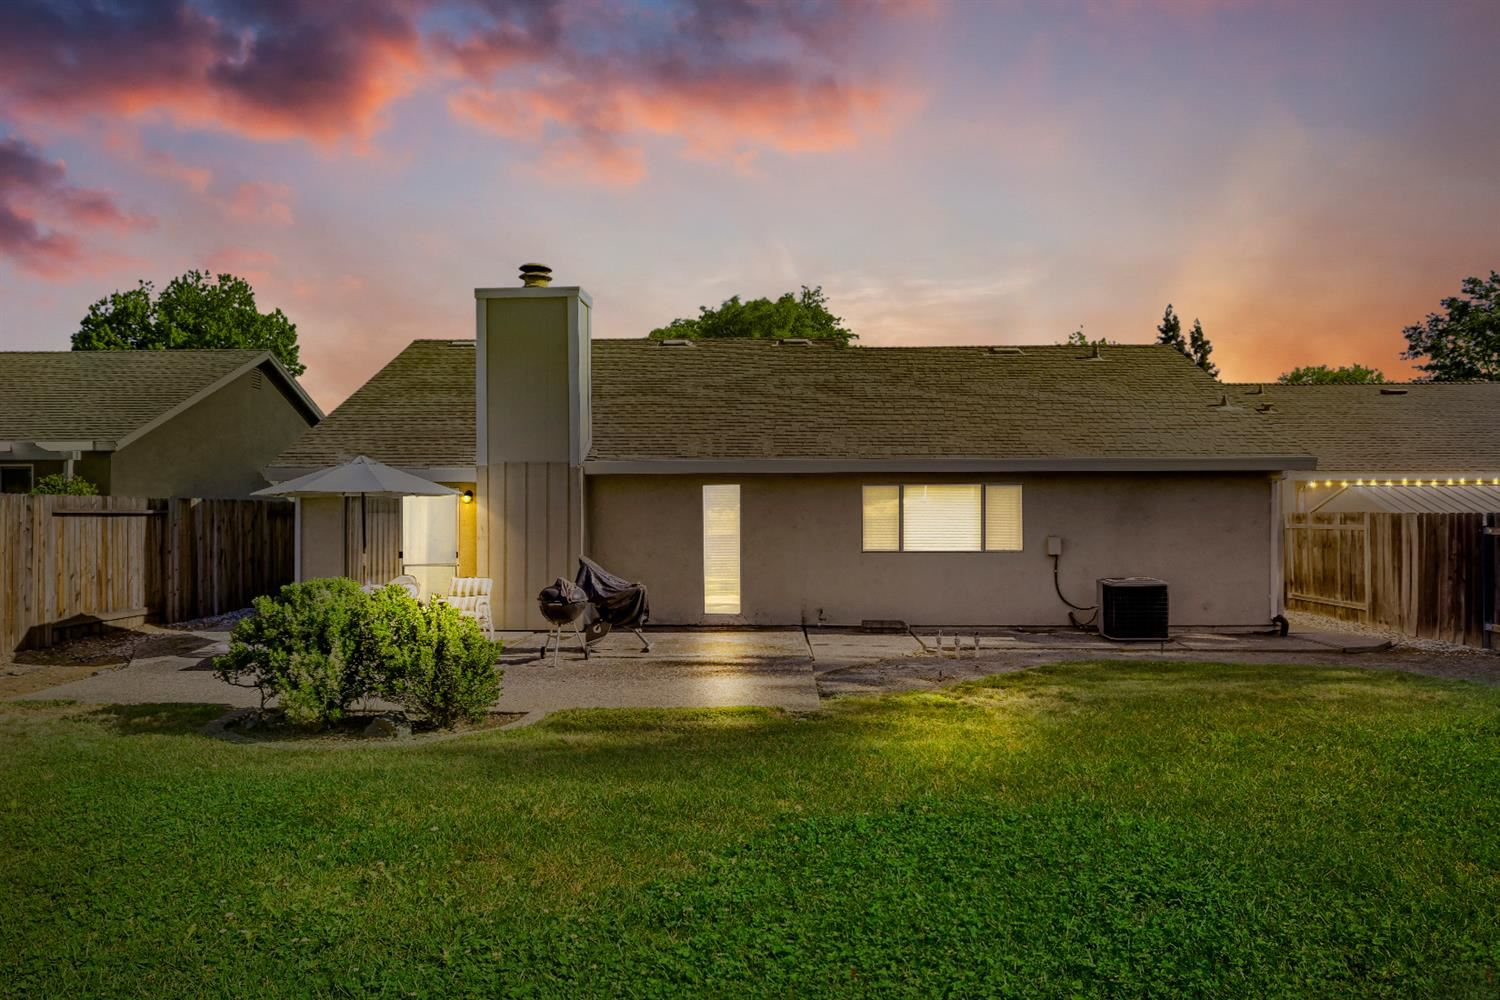 Photo of 7413 Santa Susana Way, Fair Oaks, CA 95628 (MLS # 221049186)